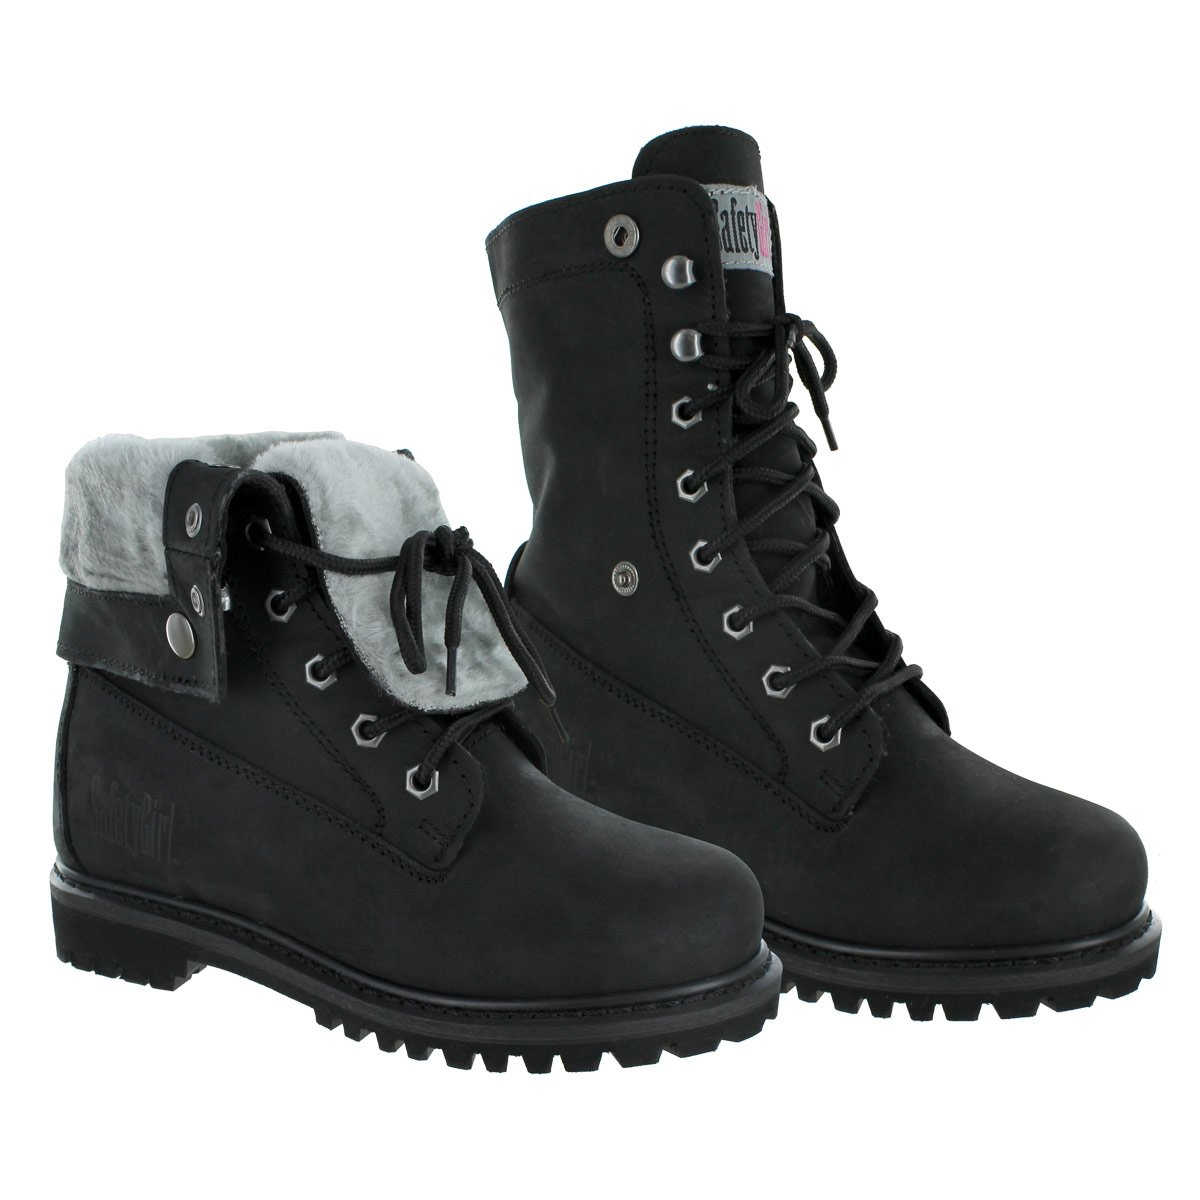 Safety Girl GS008-BLK-ST-8M Madison Fold-Down Work Boot - Black Steel Toe 8M, English, Capacity, Volume, Leather, 8M, Black ()